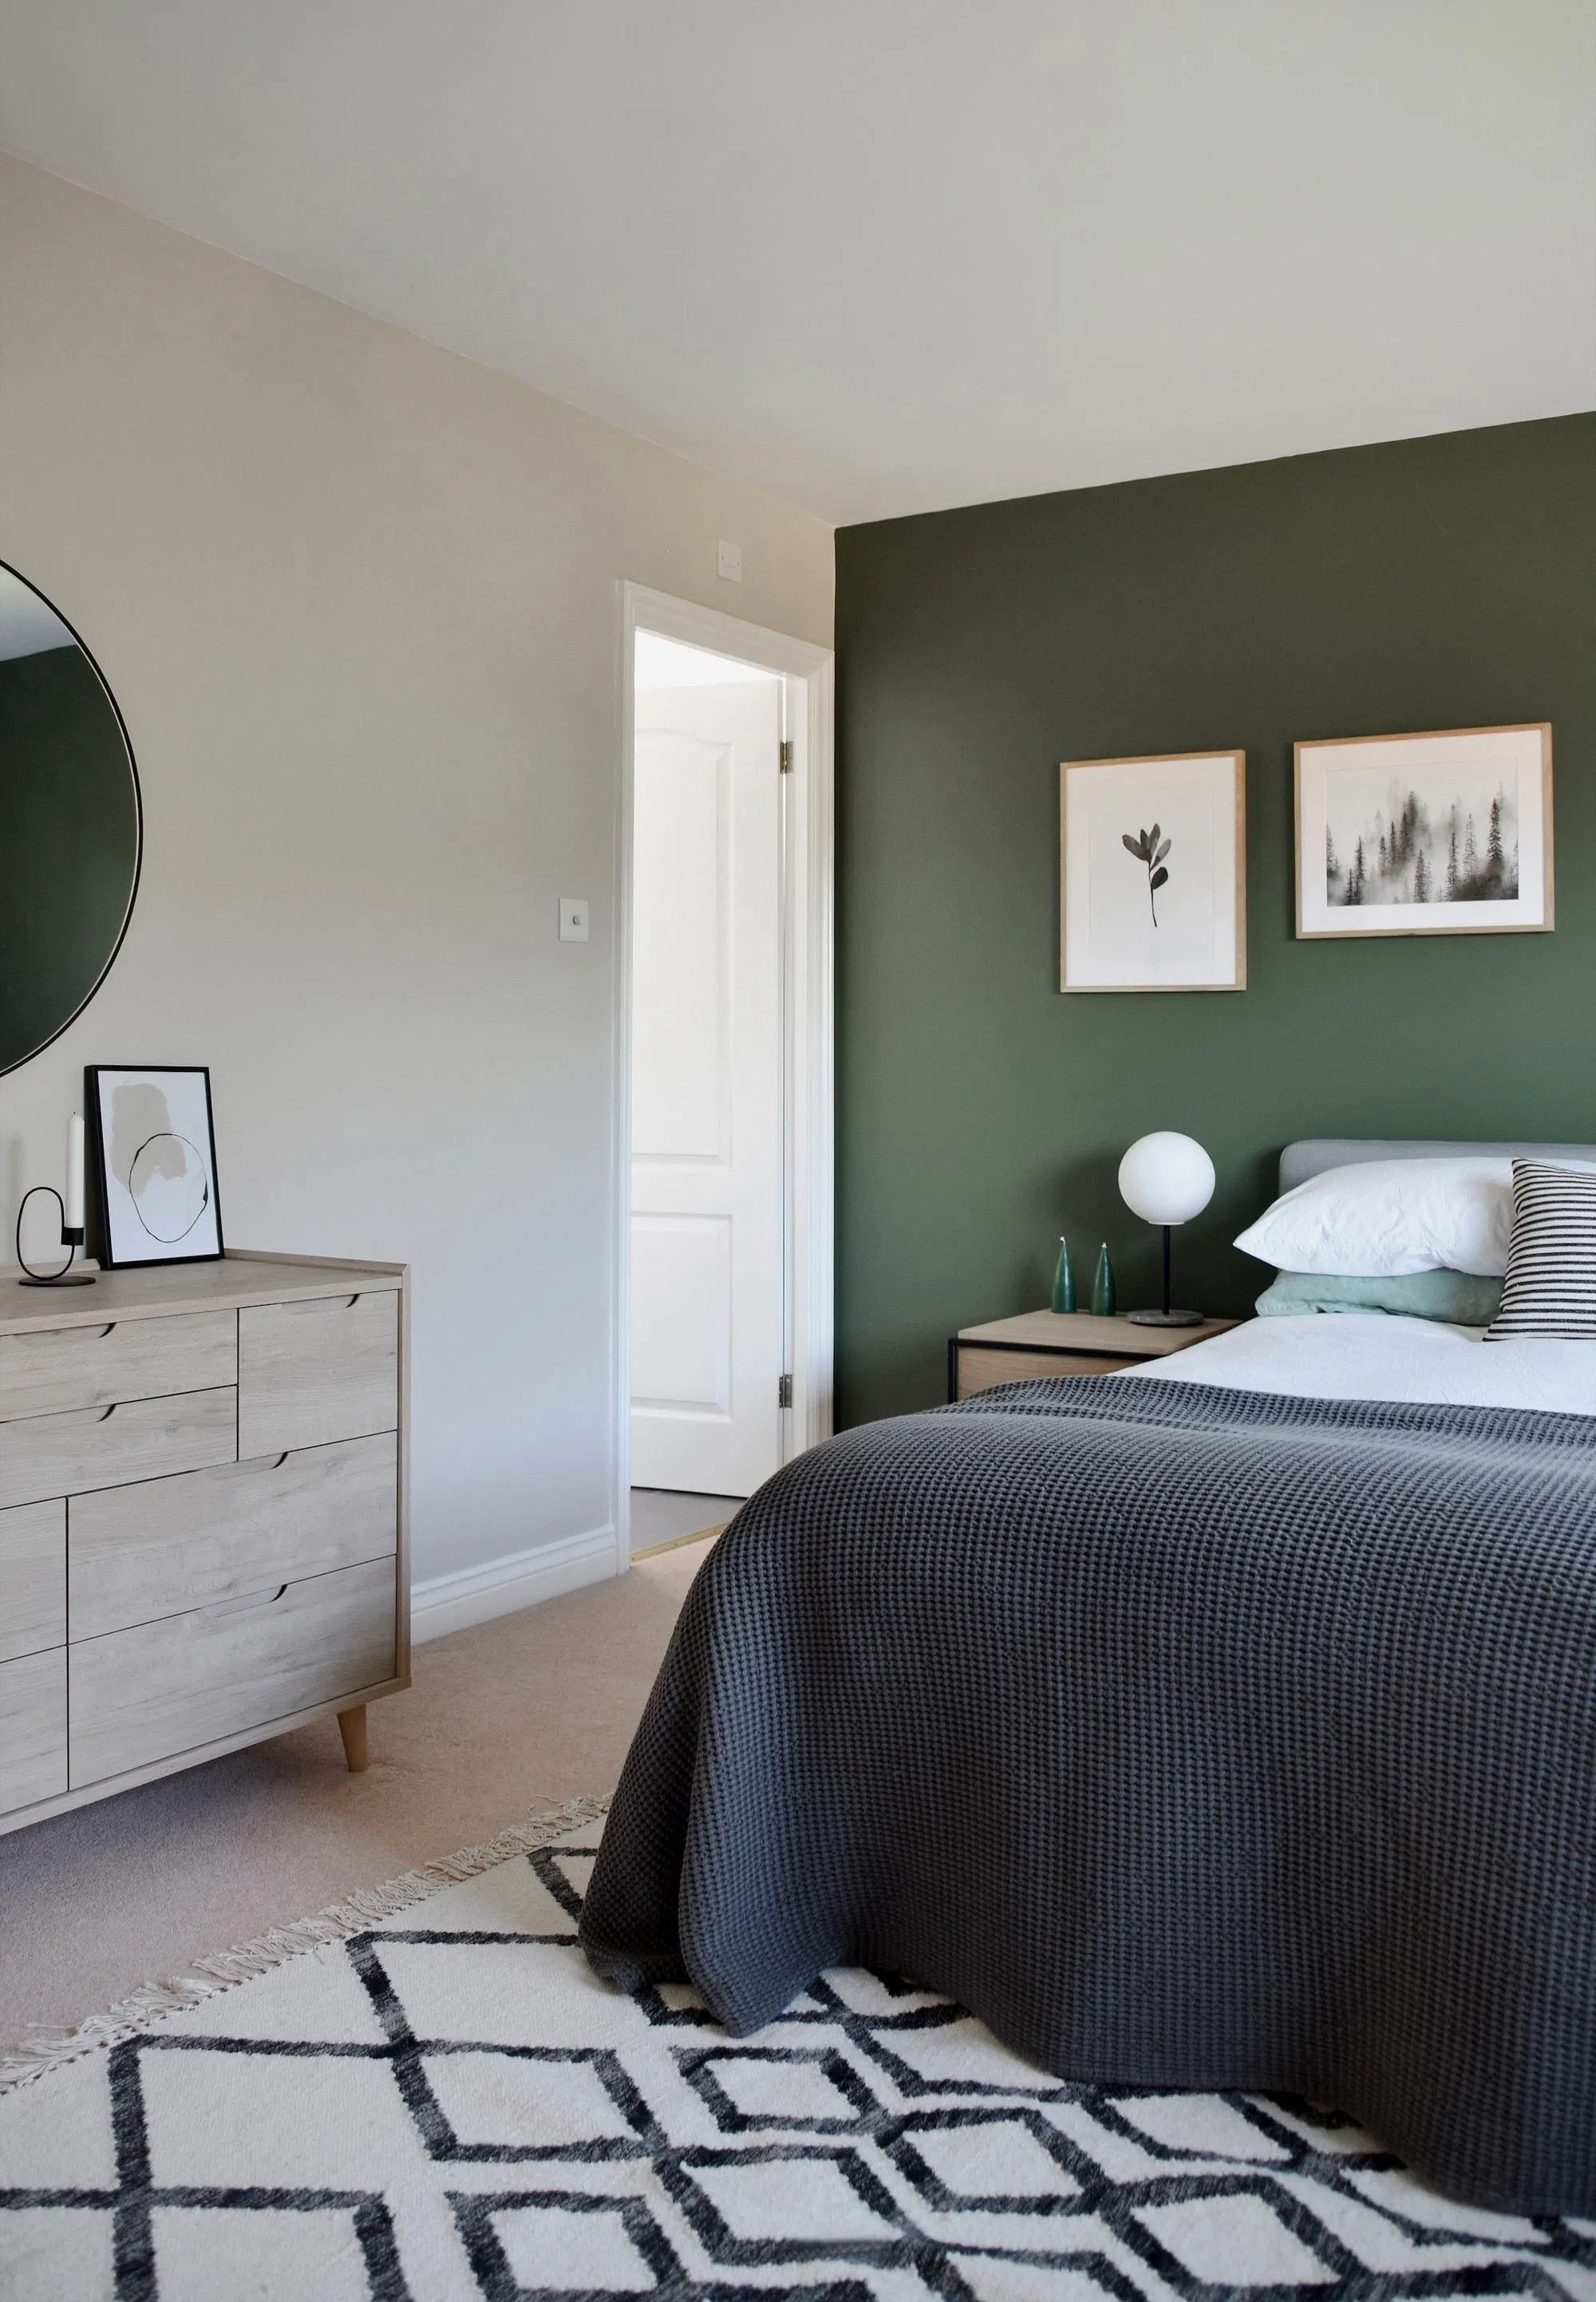 Design Project A Restful Green Bedroom These Four Walls Bedroom Green Green Bedroom Walls Green Master Bedroom